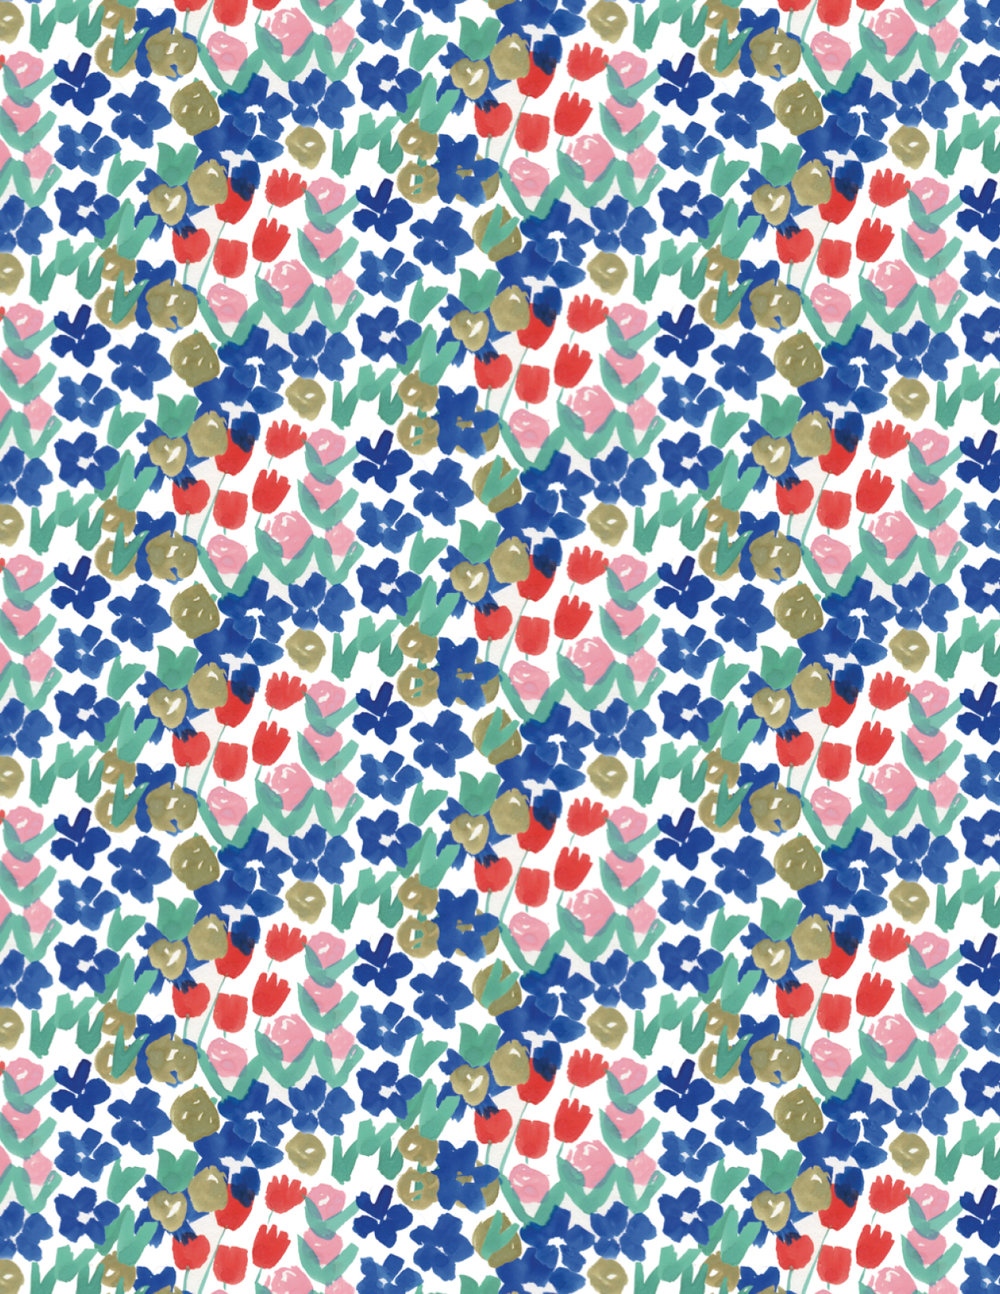 Jessbruggink_patterns_new19.jpg